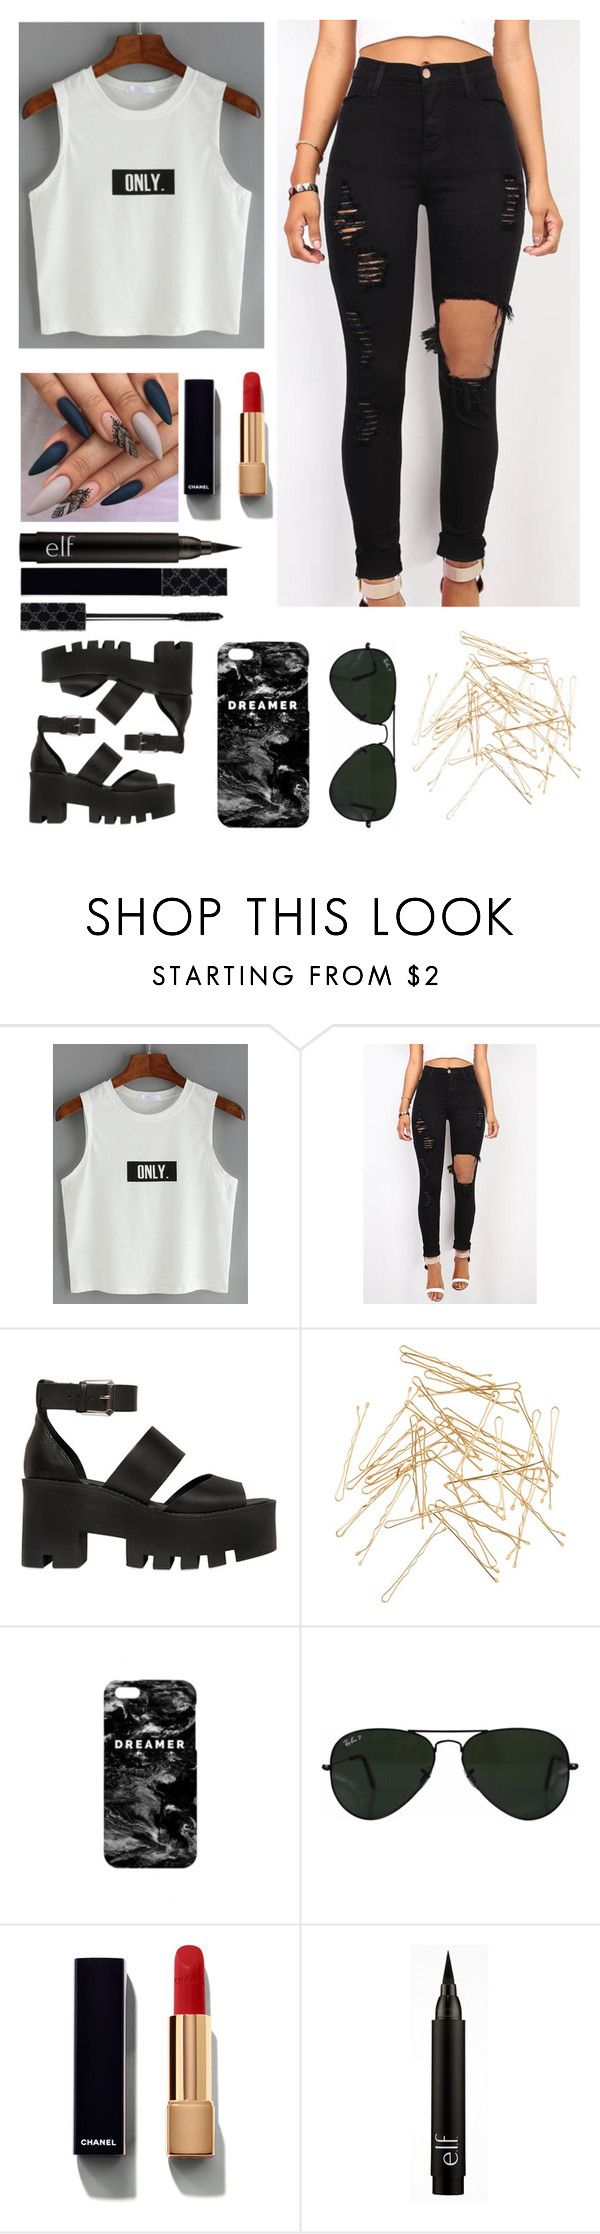 """""""4gksxdbdfafaacjjssi"""" by queen-ken ❤ liked on Polyvore featuring Windsor Smith, Monki, Mr. Gugu & Miss Go, Ray-Ban, Chanel and Gucci"""